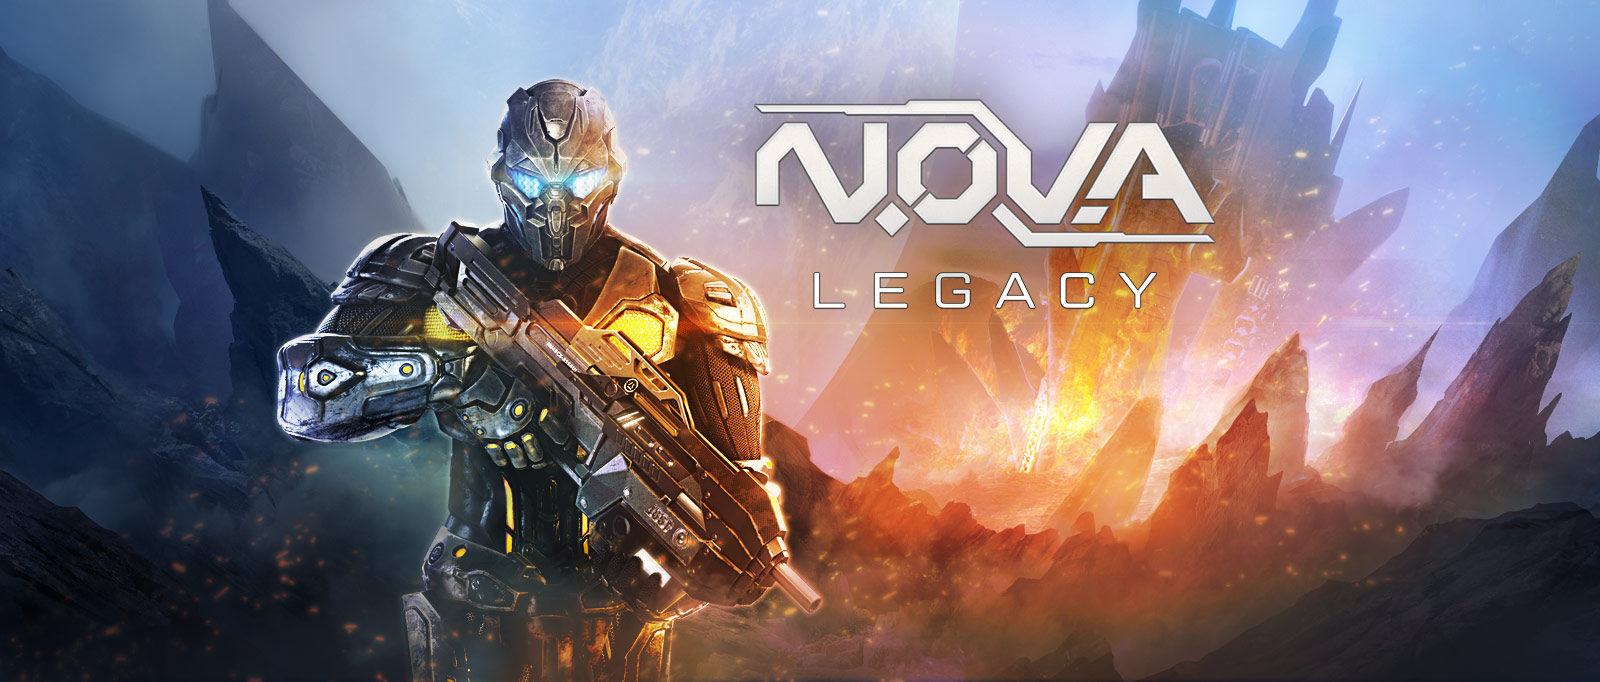 Download N.O.V.A Legacy MOD APK v5.8.0m